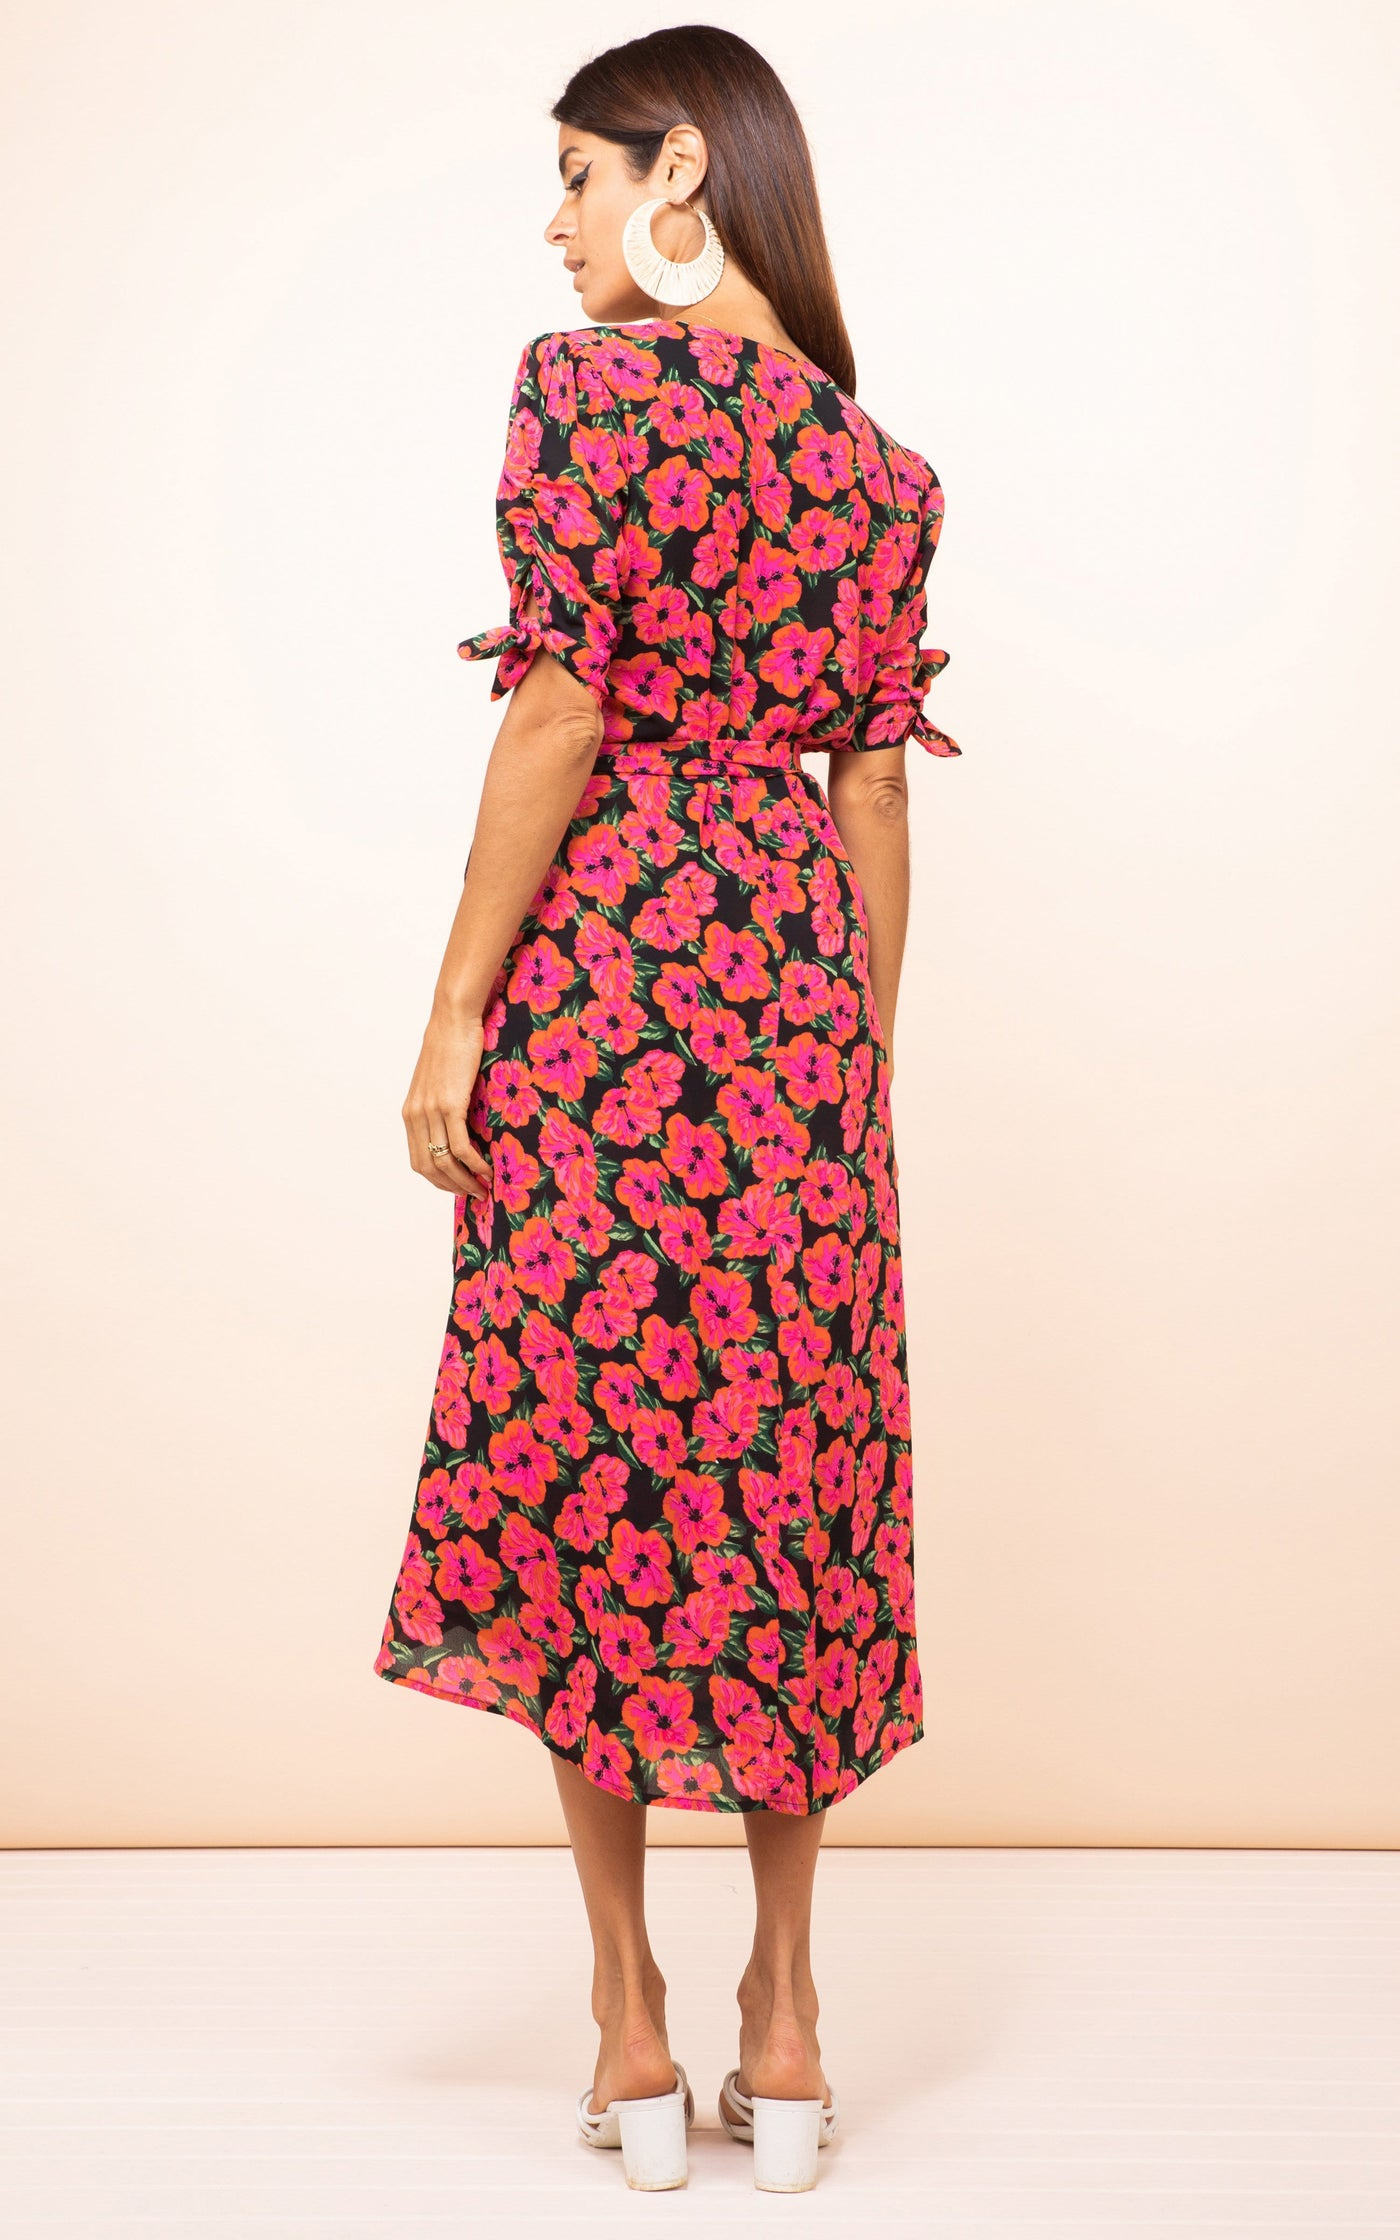 Dancing Leopard model faces backwards wearing Olivera Midi Dress in pink and black hibiscus print